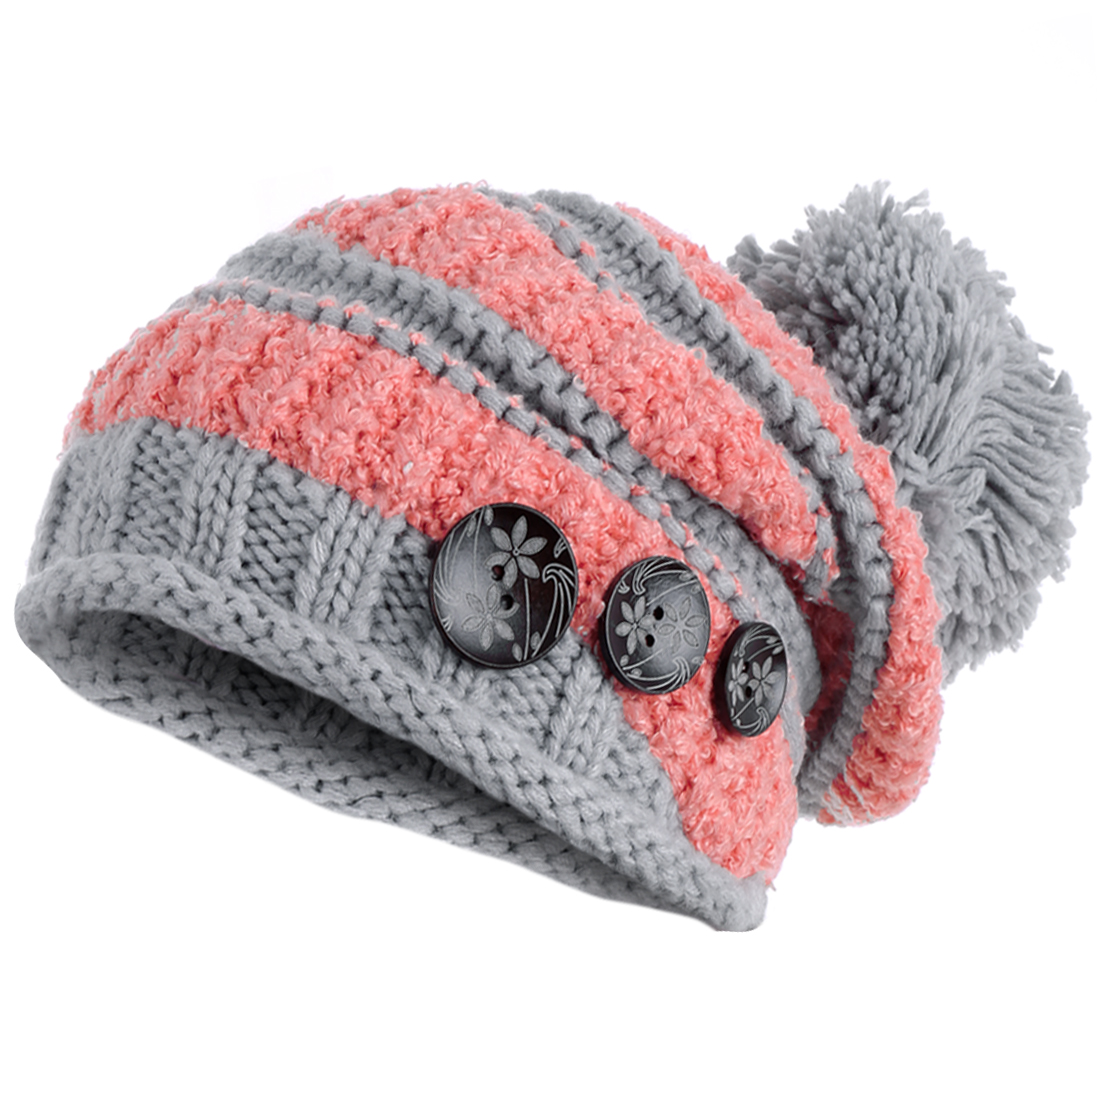 Women's Pom Pom Patchwork Buttoned Decor Warm Beanie Pink